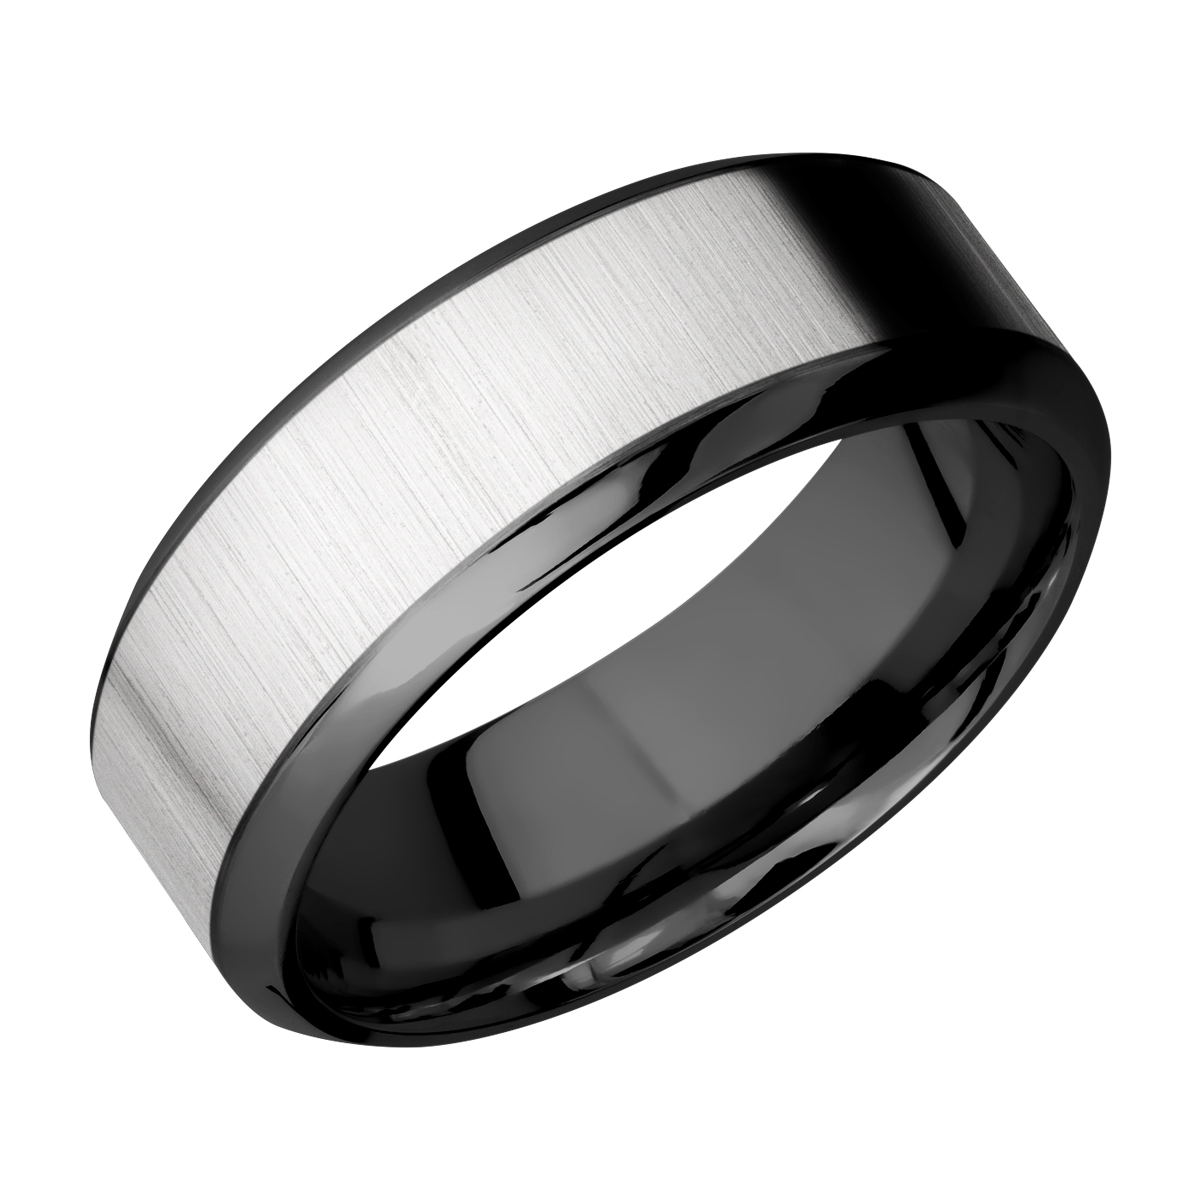 This is an image of Lashbrook ZPF44HB44/TITANIUM Zirconium Wedding Ring or Band